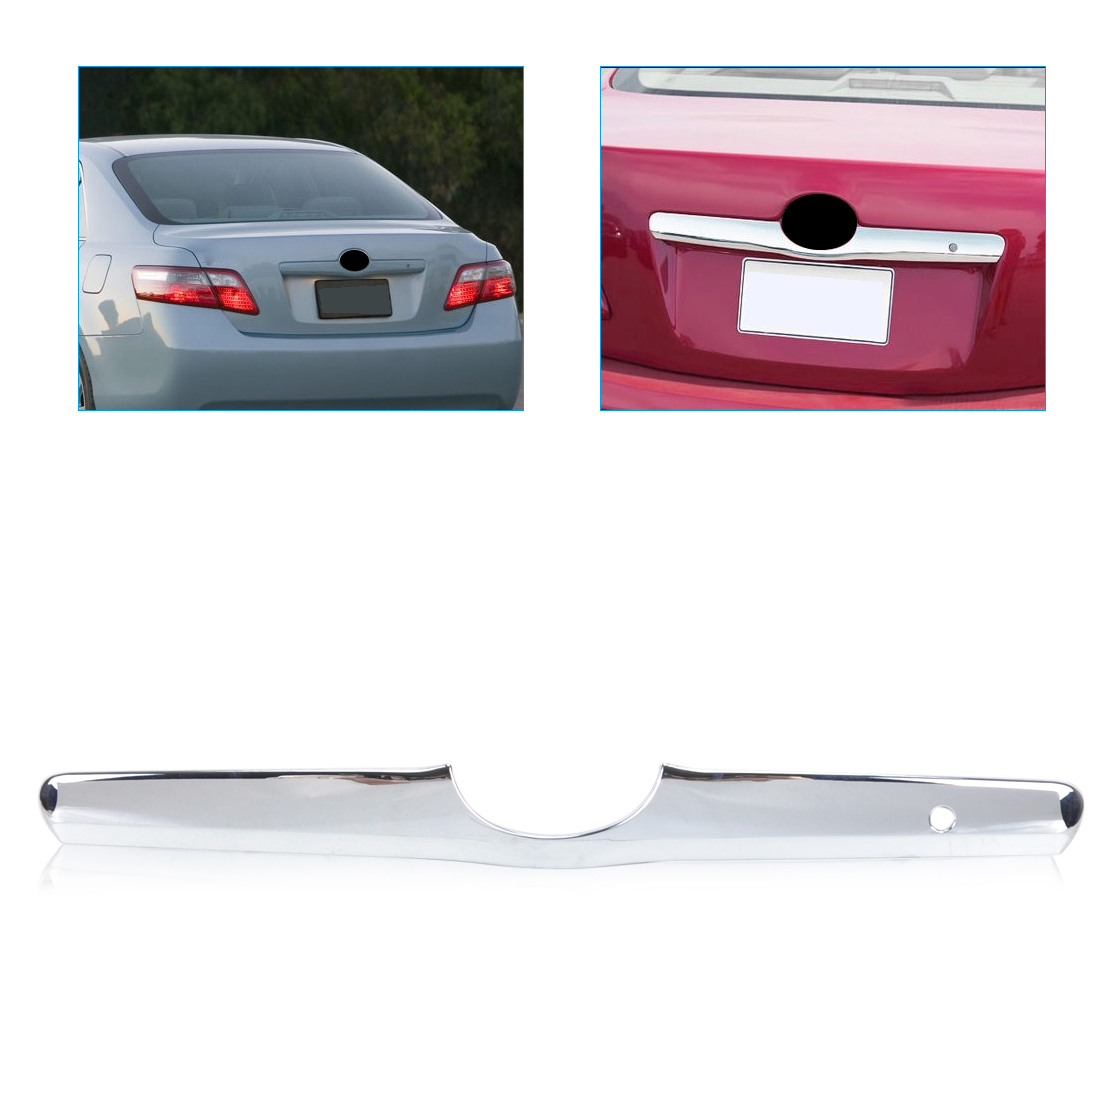 beler ABS Triple Chrome Tailgate Trunk Hatch Trim Bezel Cover for Toyota Camry 2006 2007 2008 2009 2010 2011